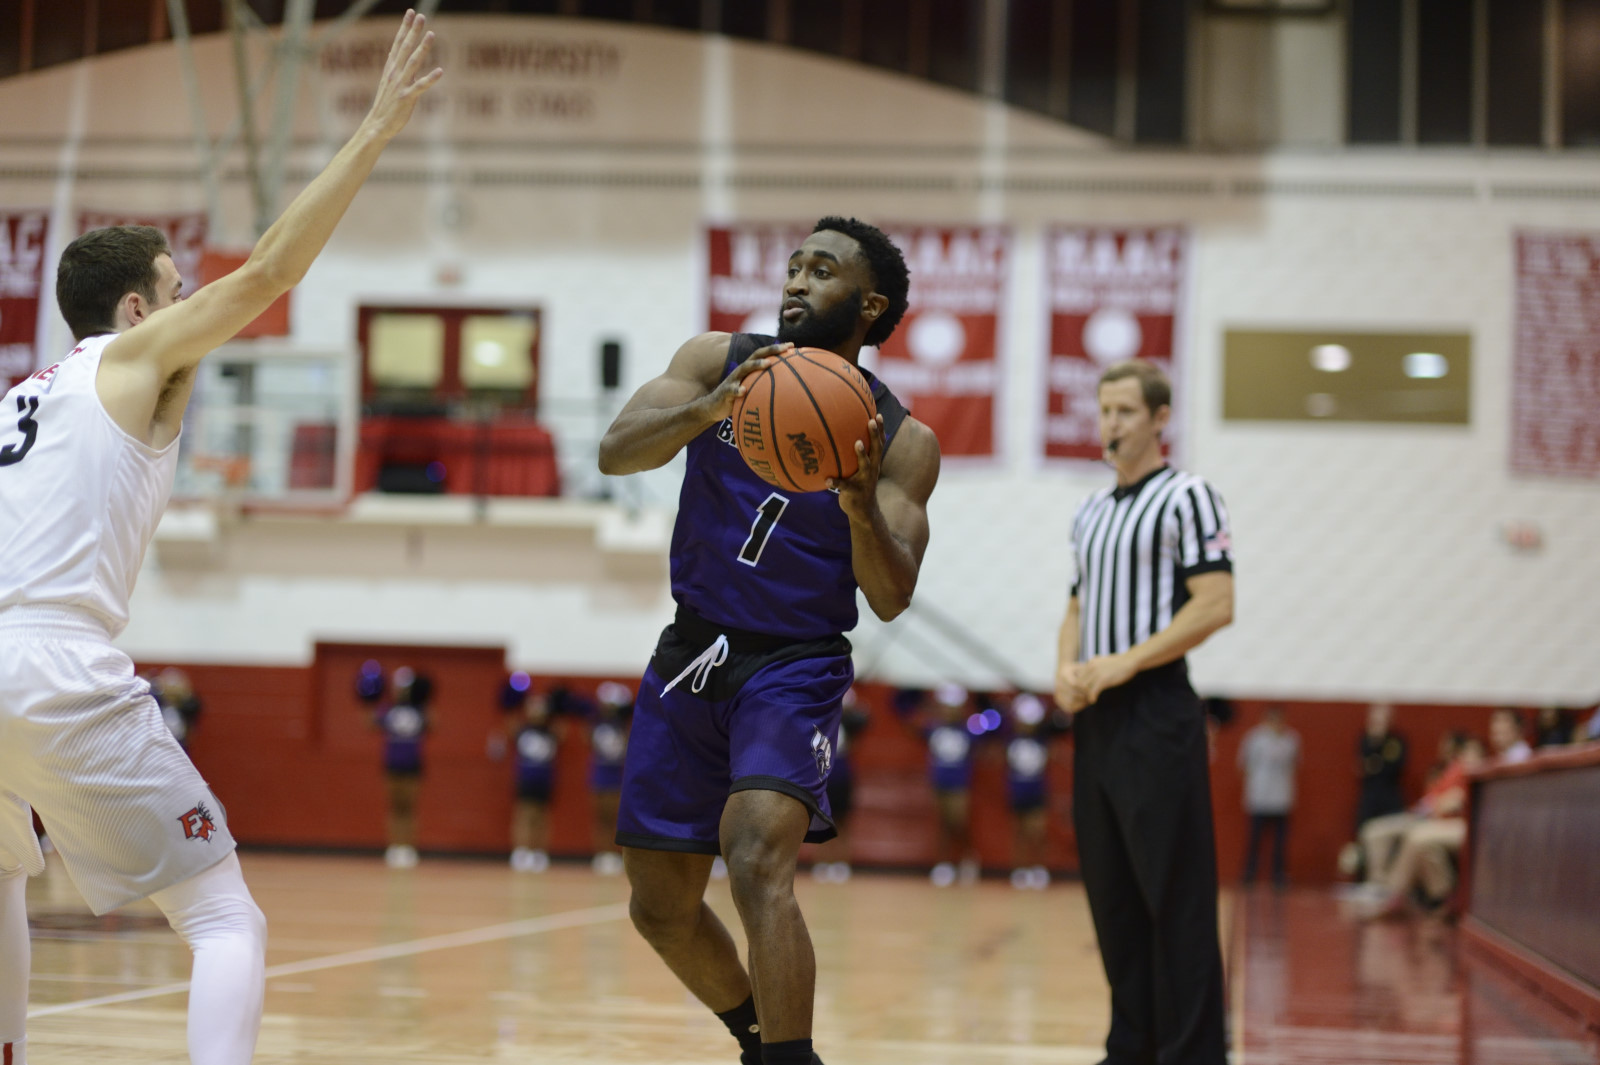 Offense Back In High Gear As Men's Hoops Sprints Past UDC With A 109-89 Victory